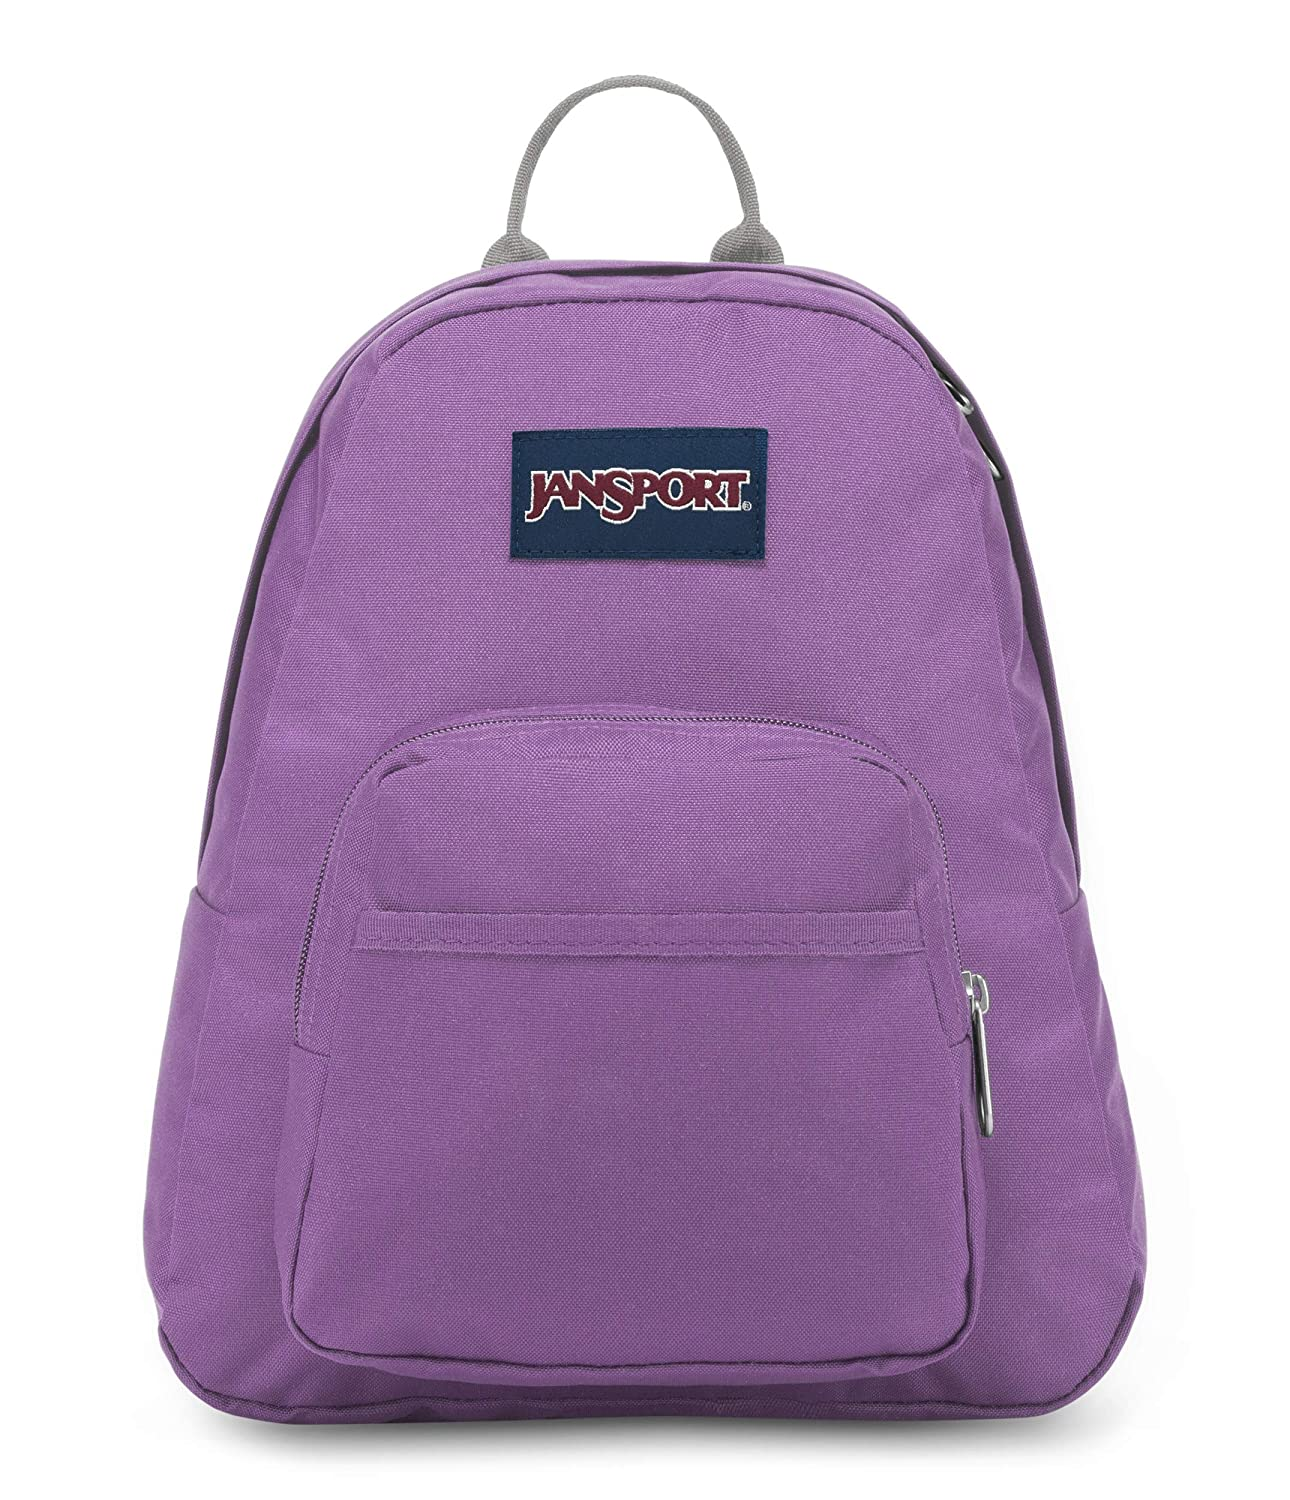 JanSport Half Pint Backpack Vivid Lilac  Amazon.ca  Sports   Outdoors 8c715d4200